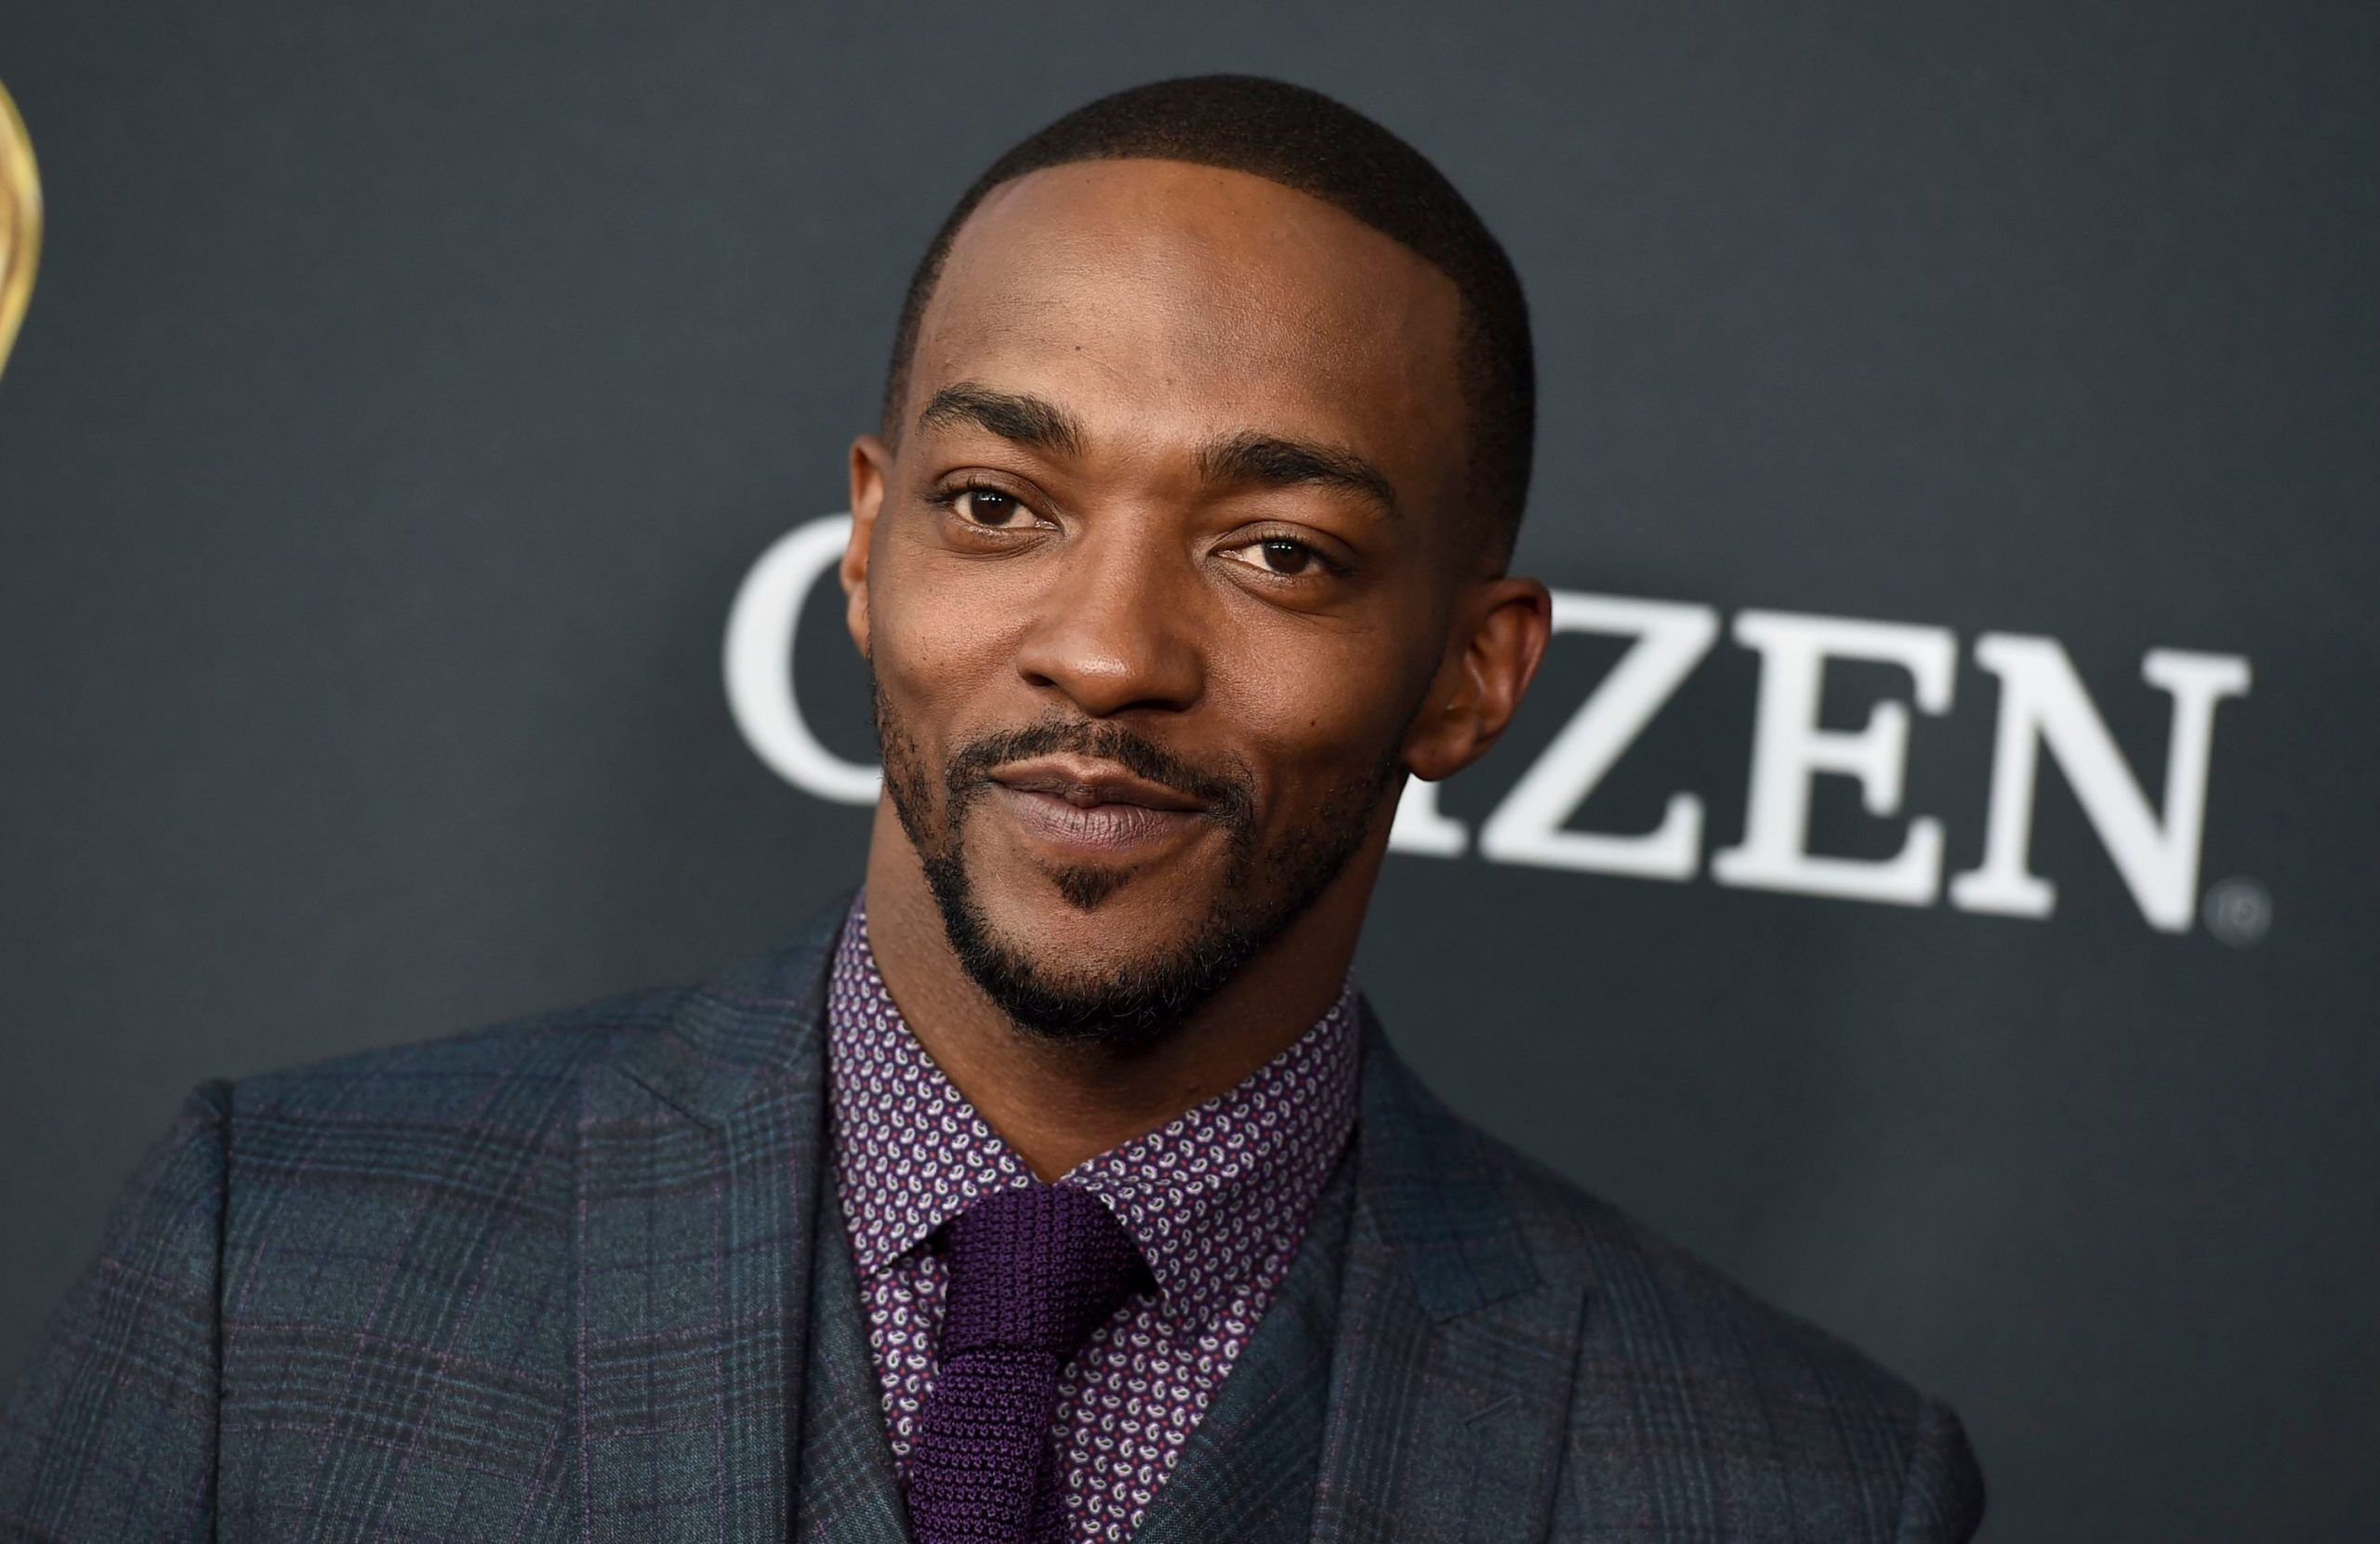 Anthony Mackie Gets Frank About the Future of Hollywood, Streaming, & Captain America